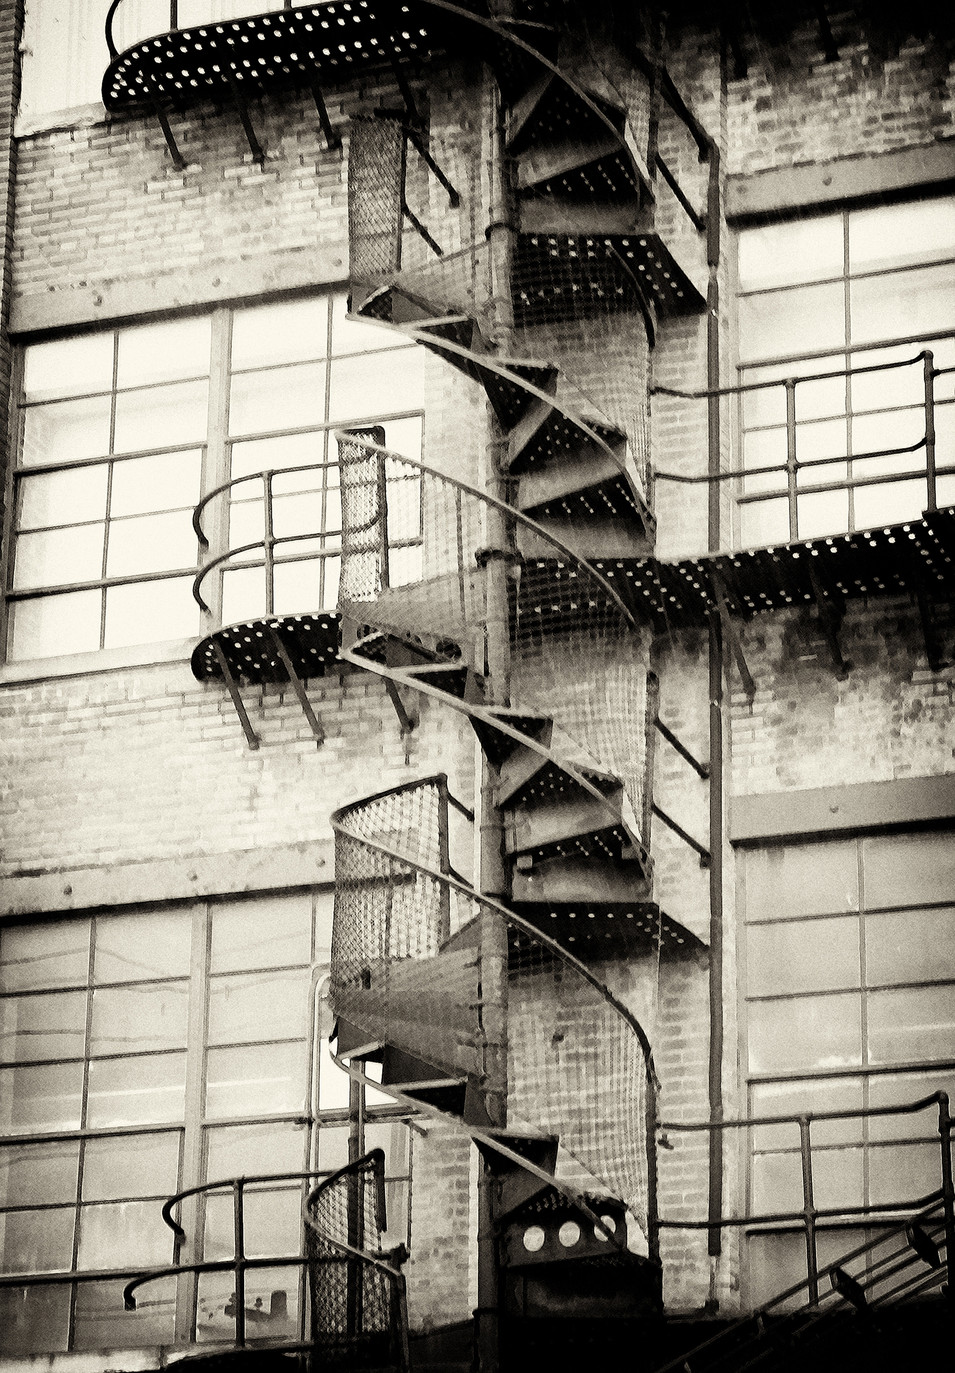 FIRE ESCAPE IN SEPIA